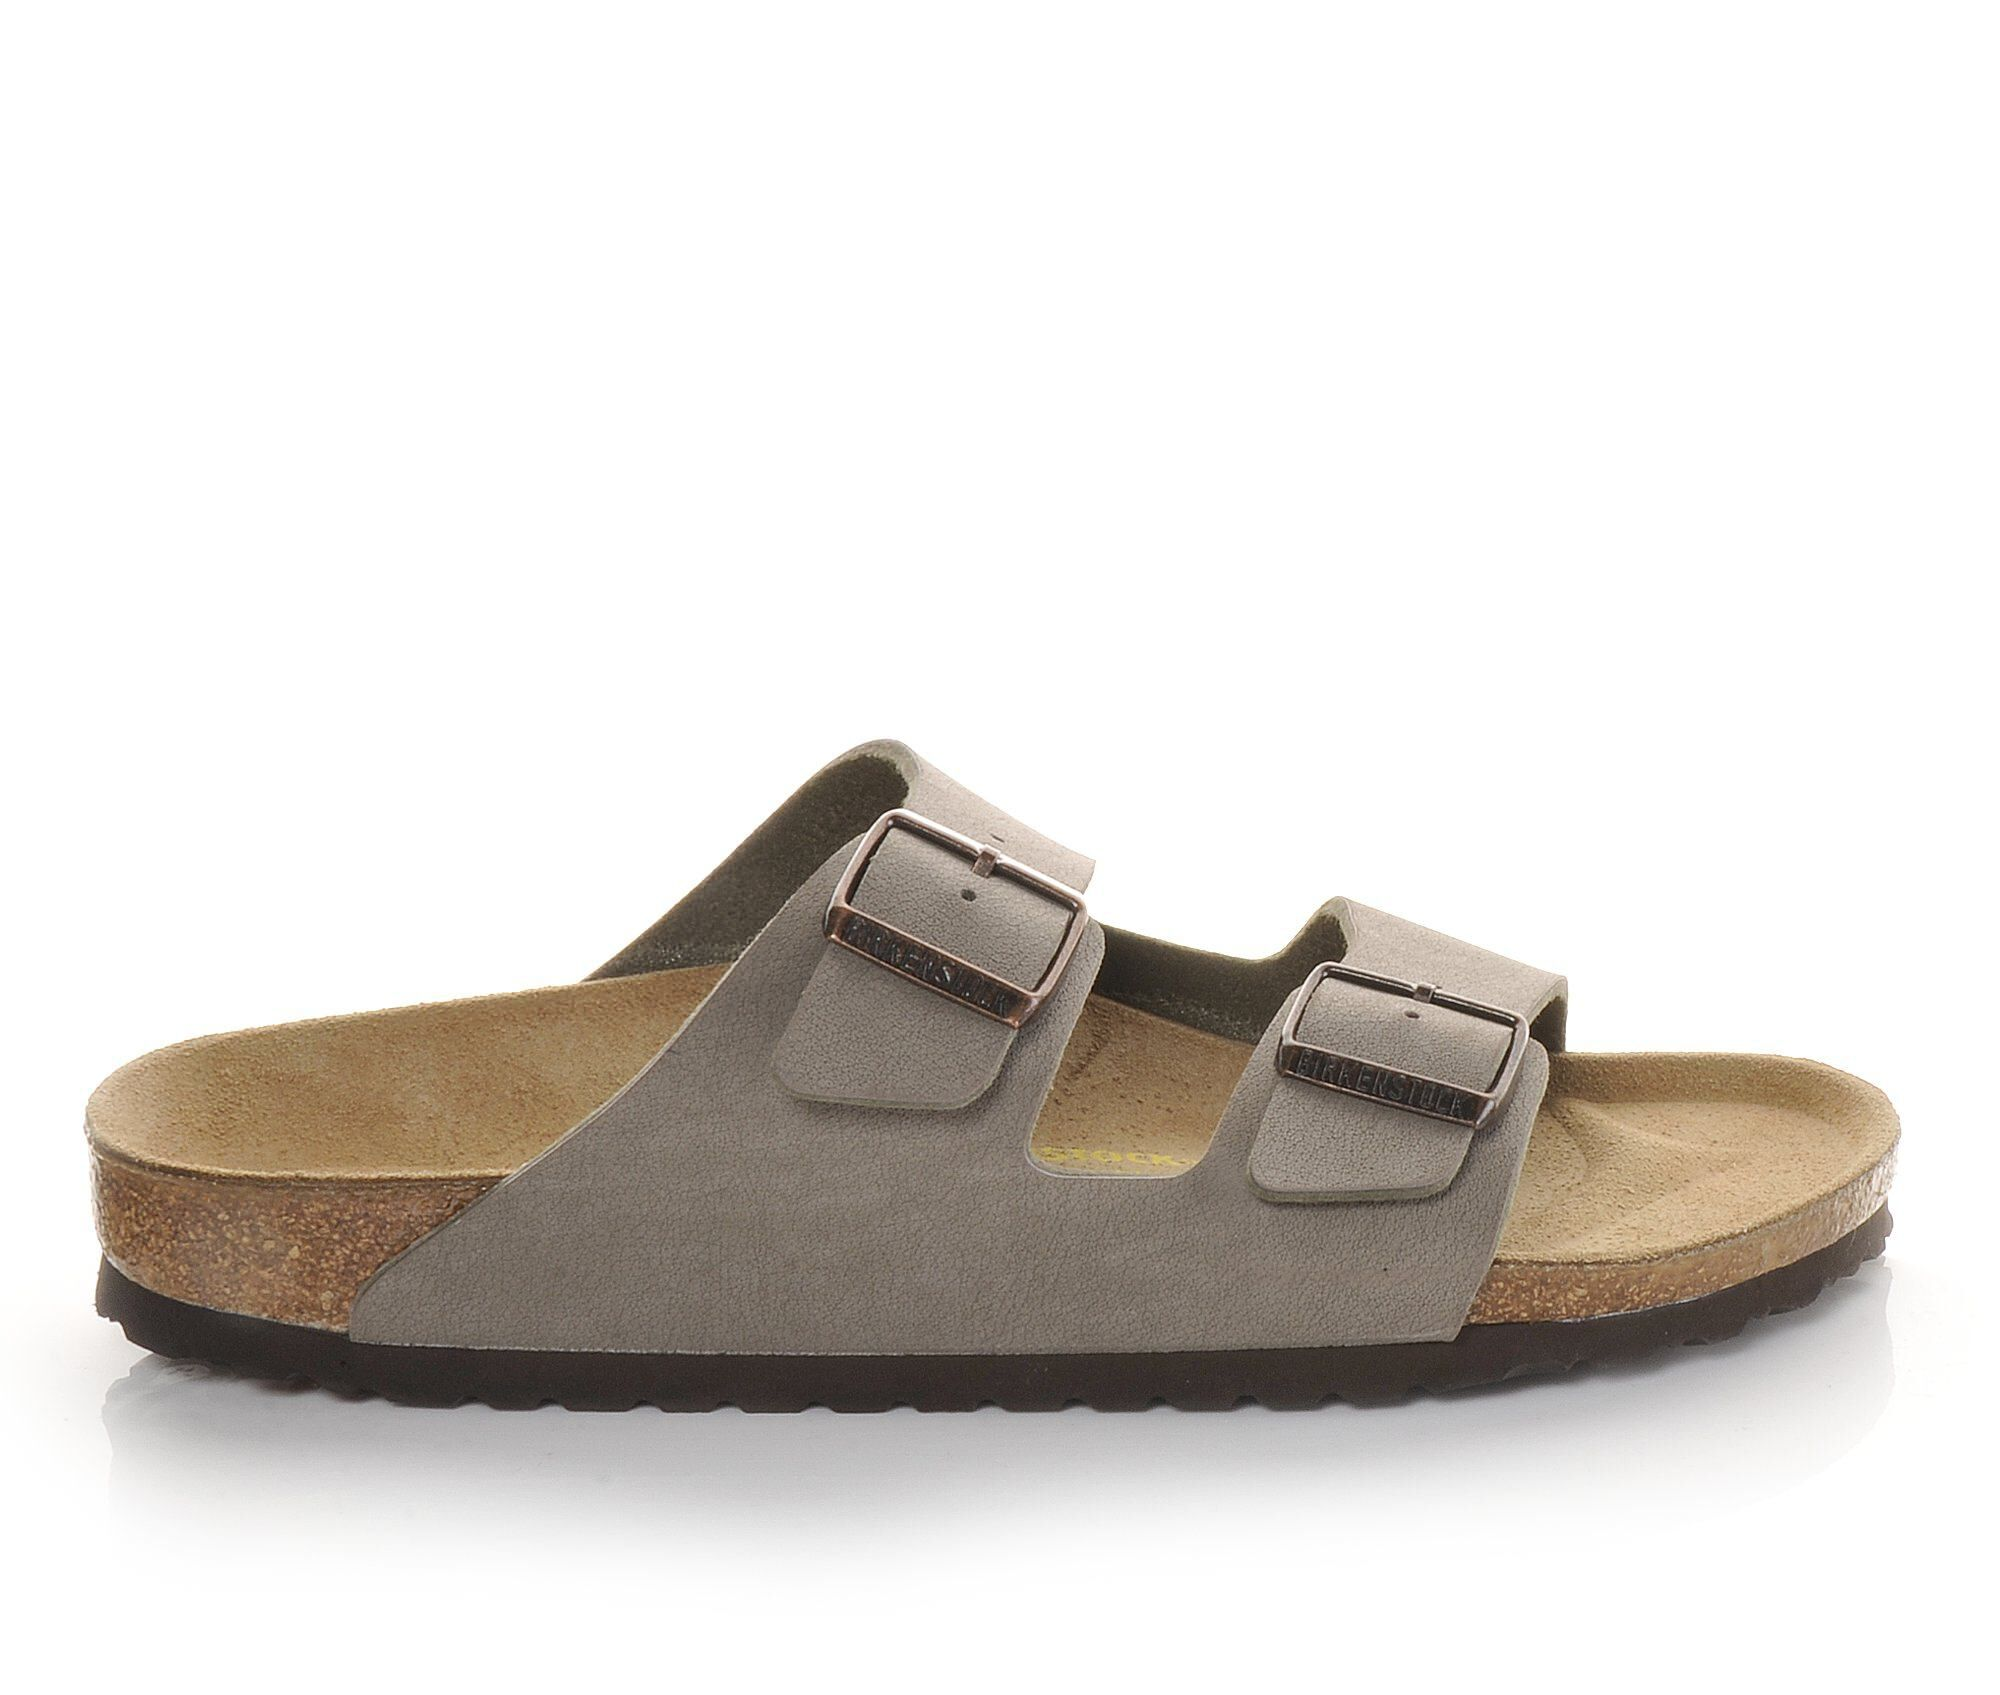 Men's Birkenstock Arizona 2 Buckle Outdoor Sandals Stone